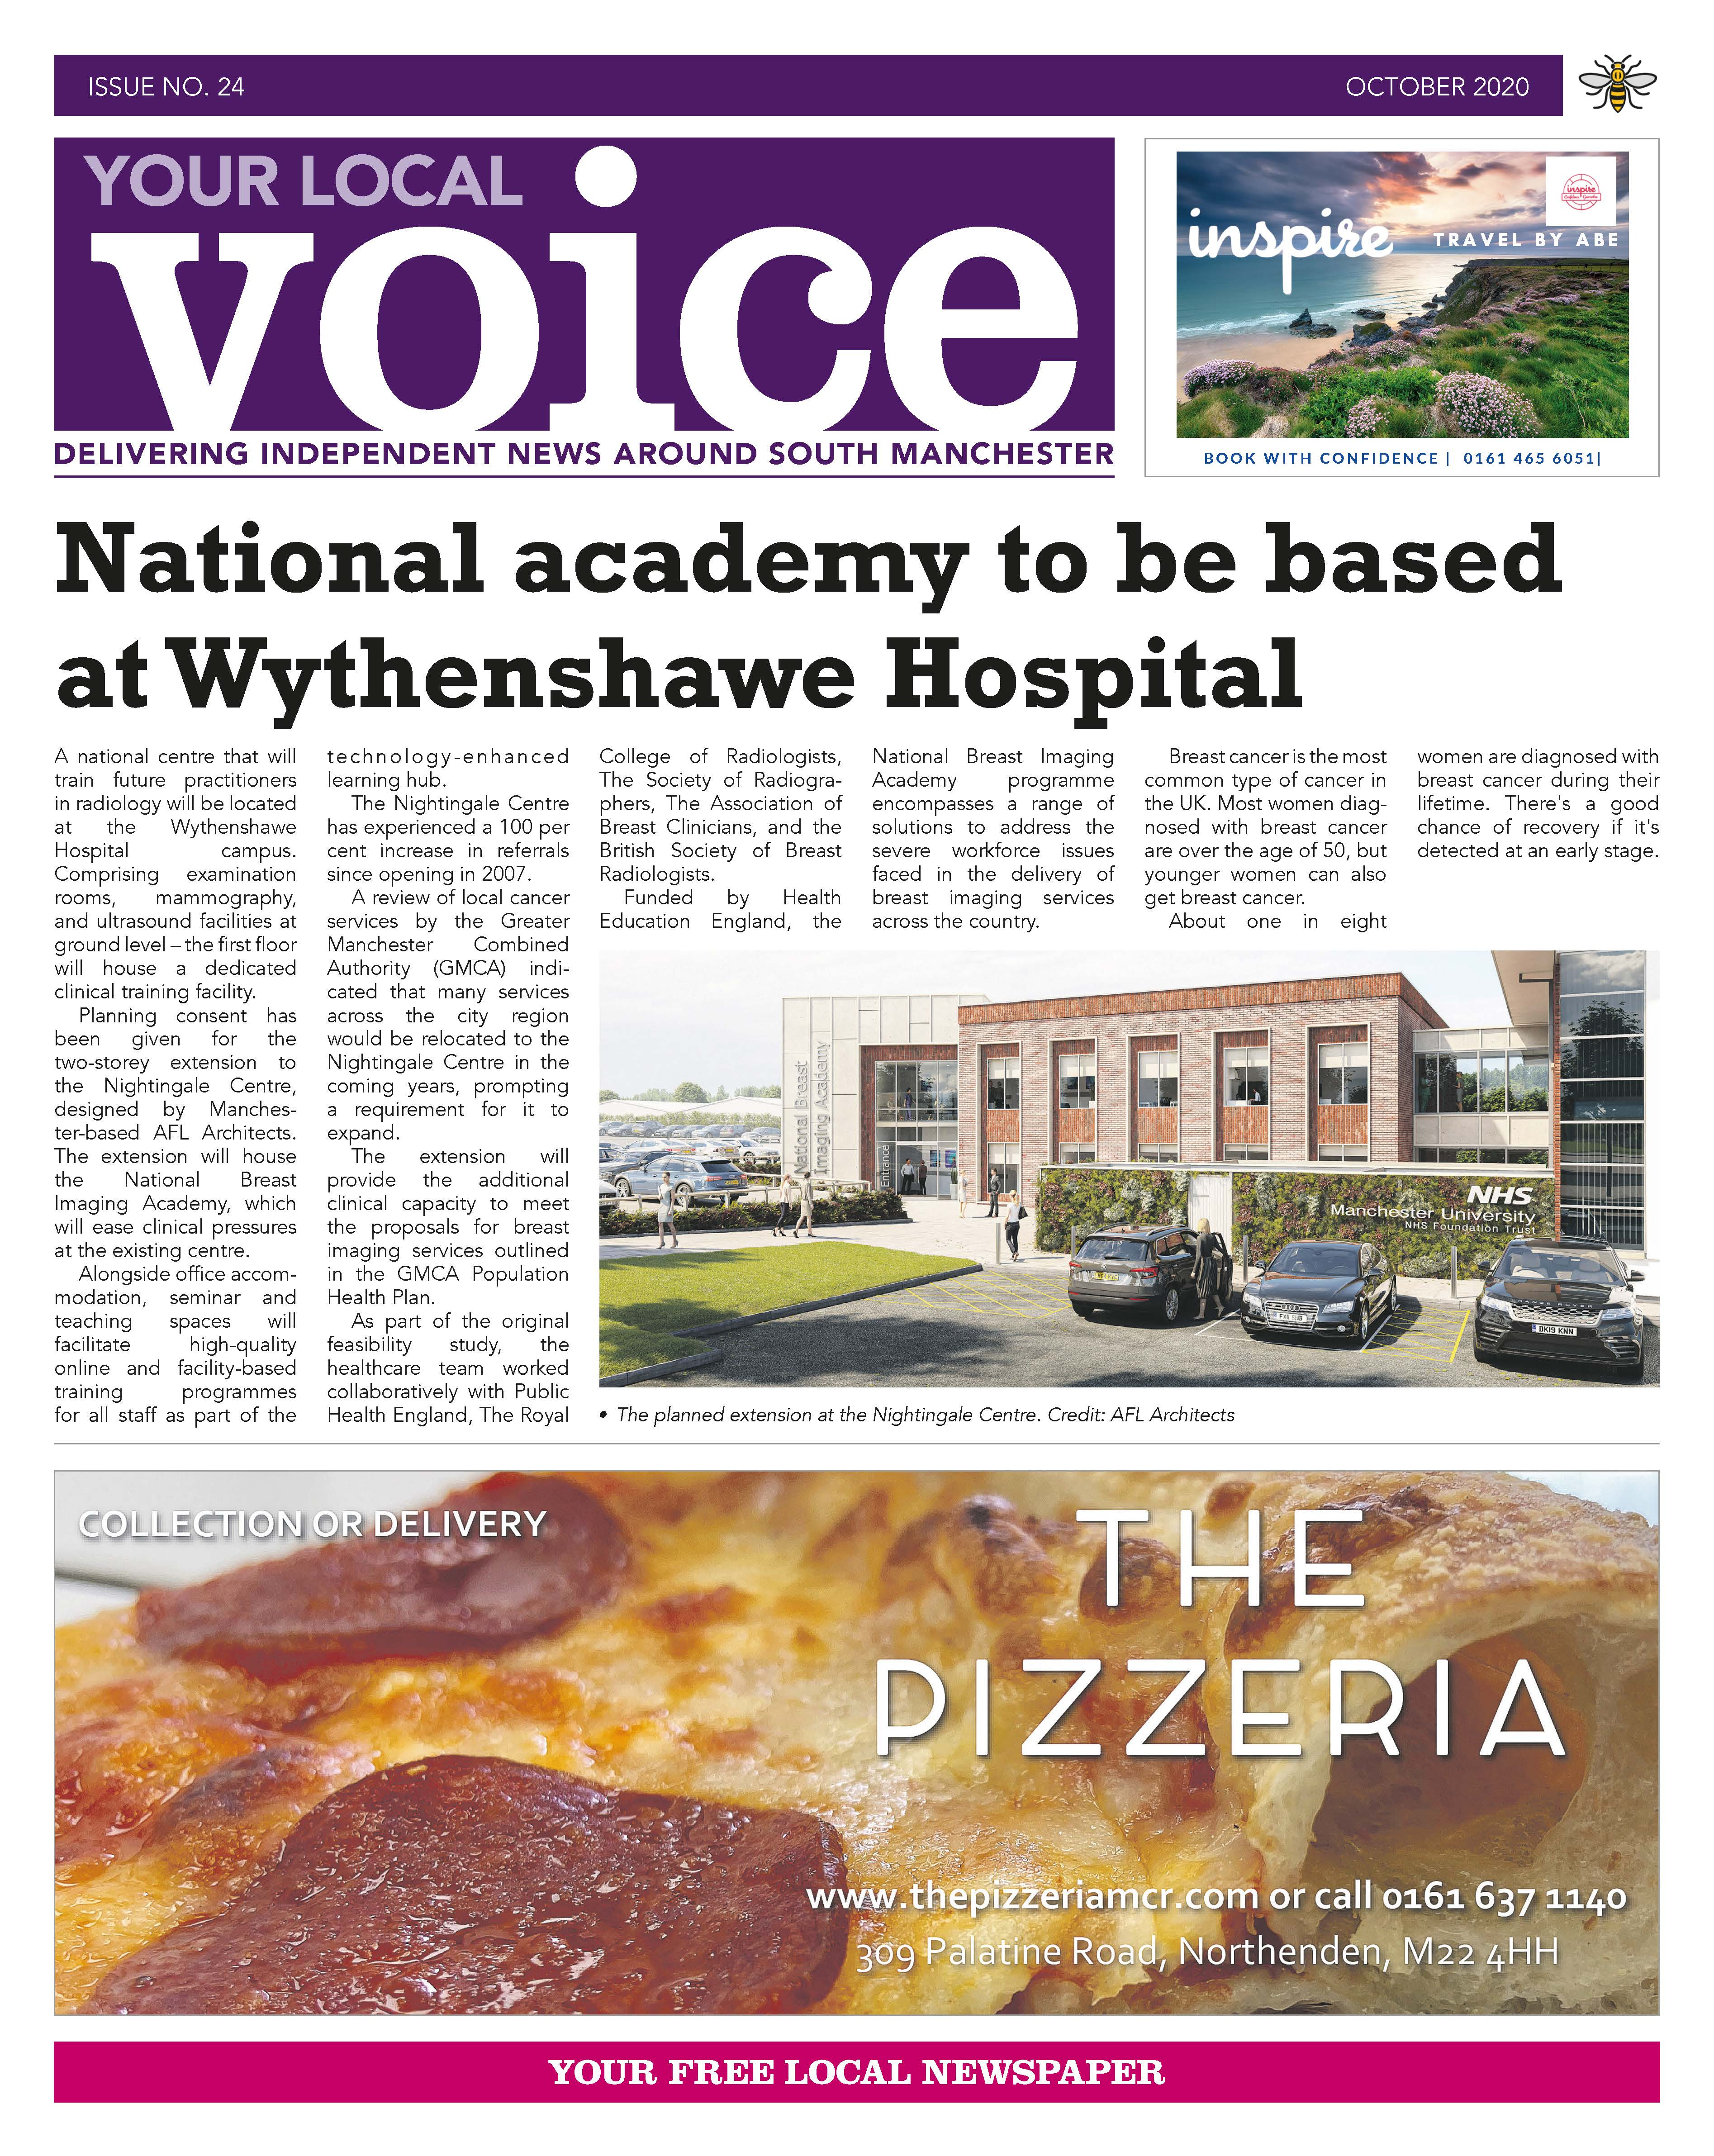 Your Local Voice newspaper issue 24